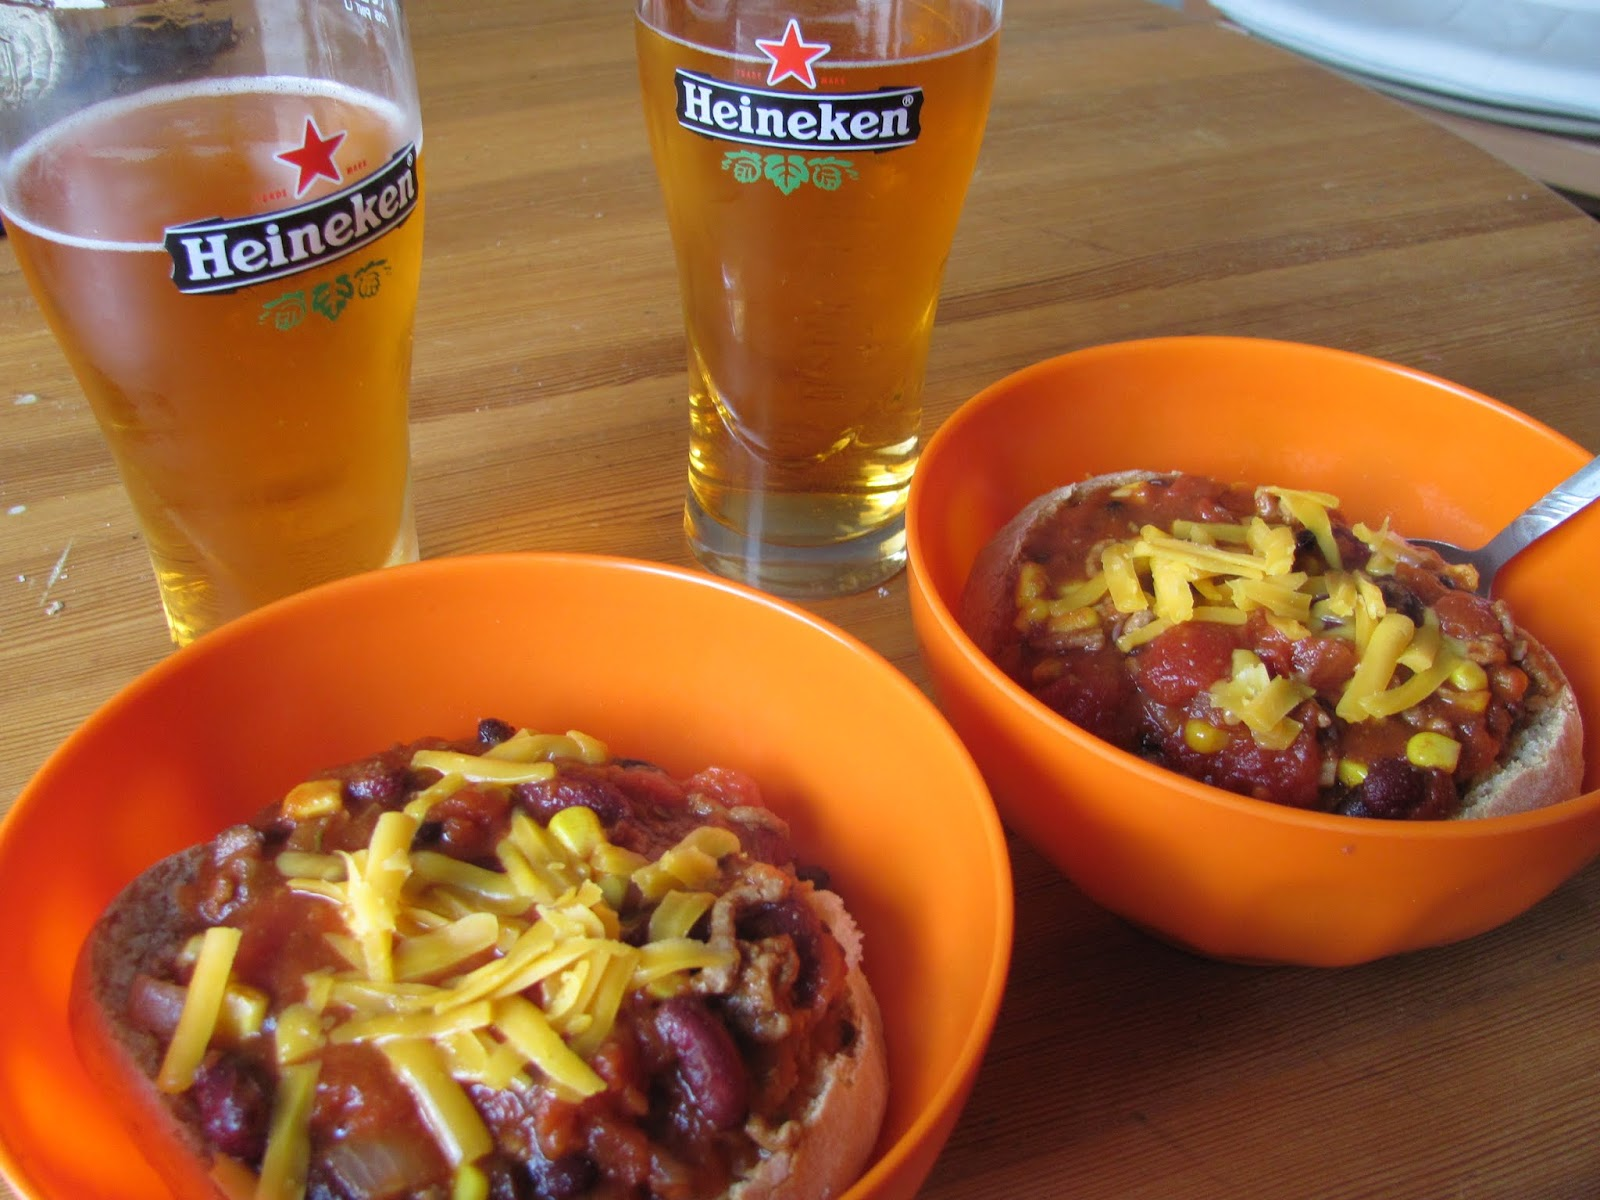 Two bowls of chilli topped with cheese and two glasses of Bulmer's served in Heineken glasses in Dublin, Ireland